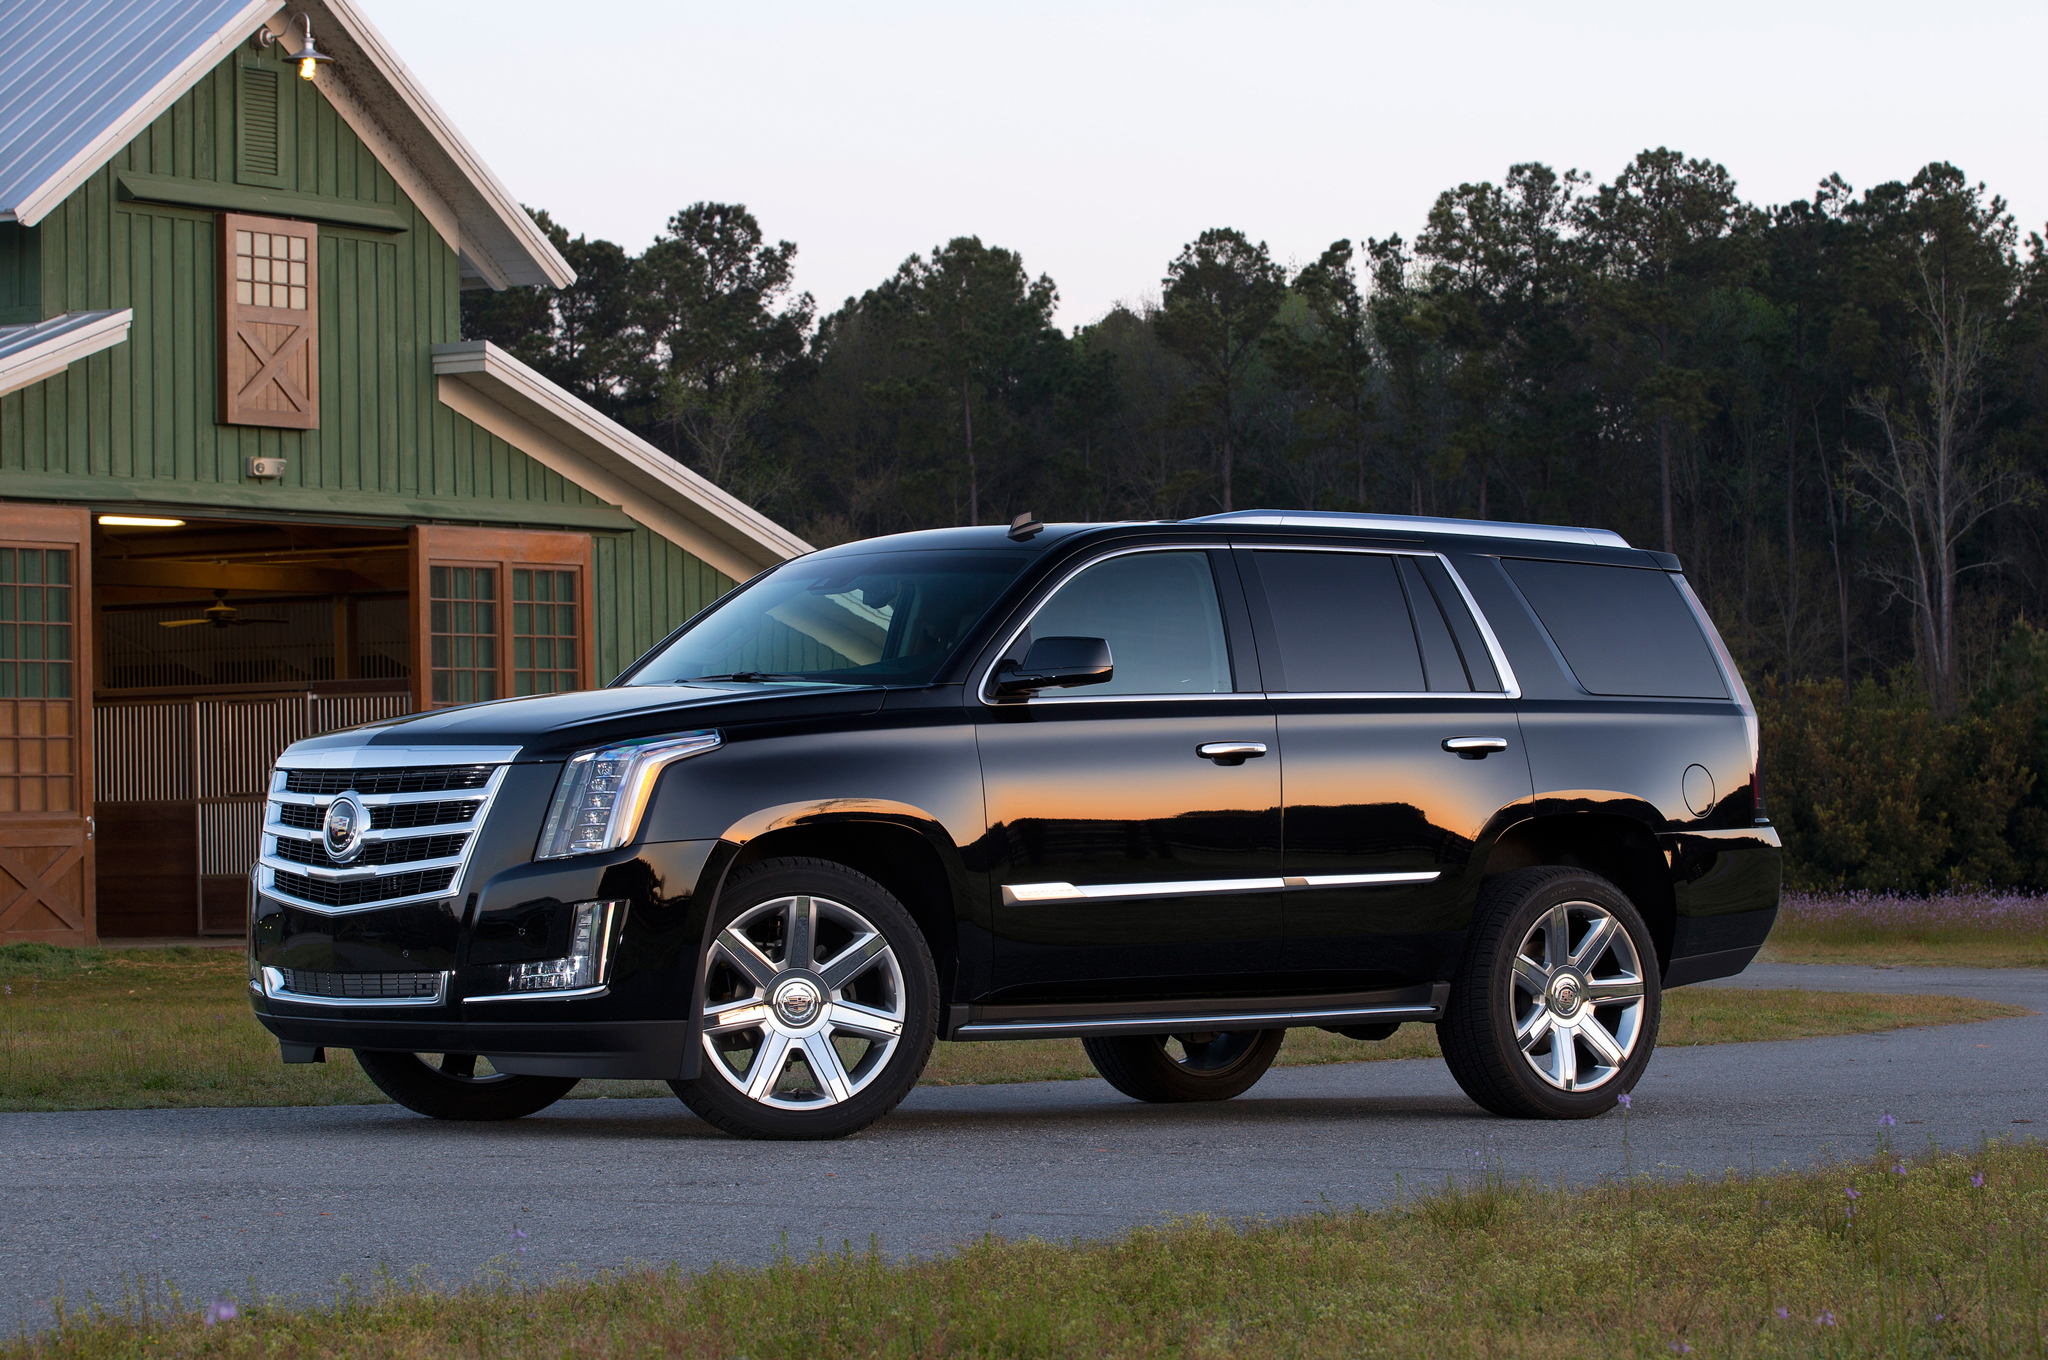 Cadillac 2015 escalade opening a new generation of luxury SUVs #8